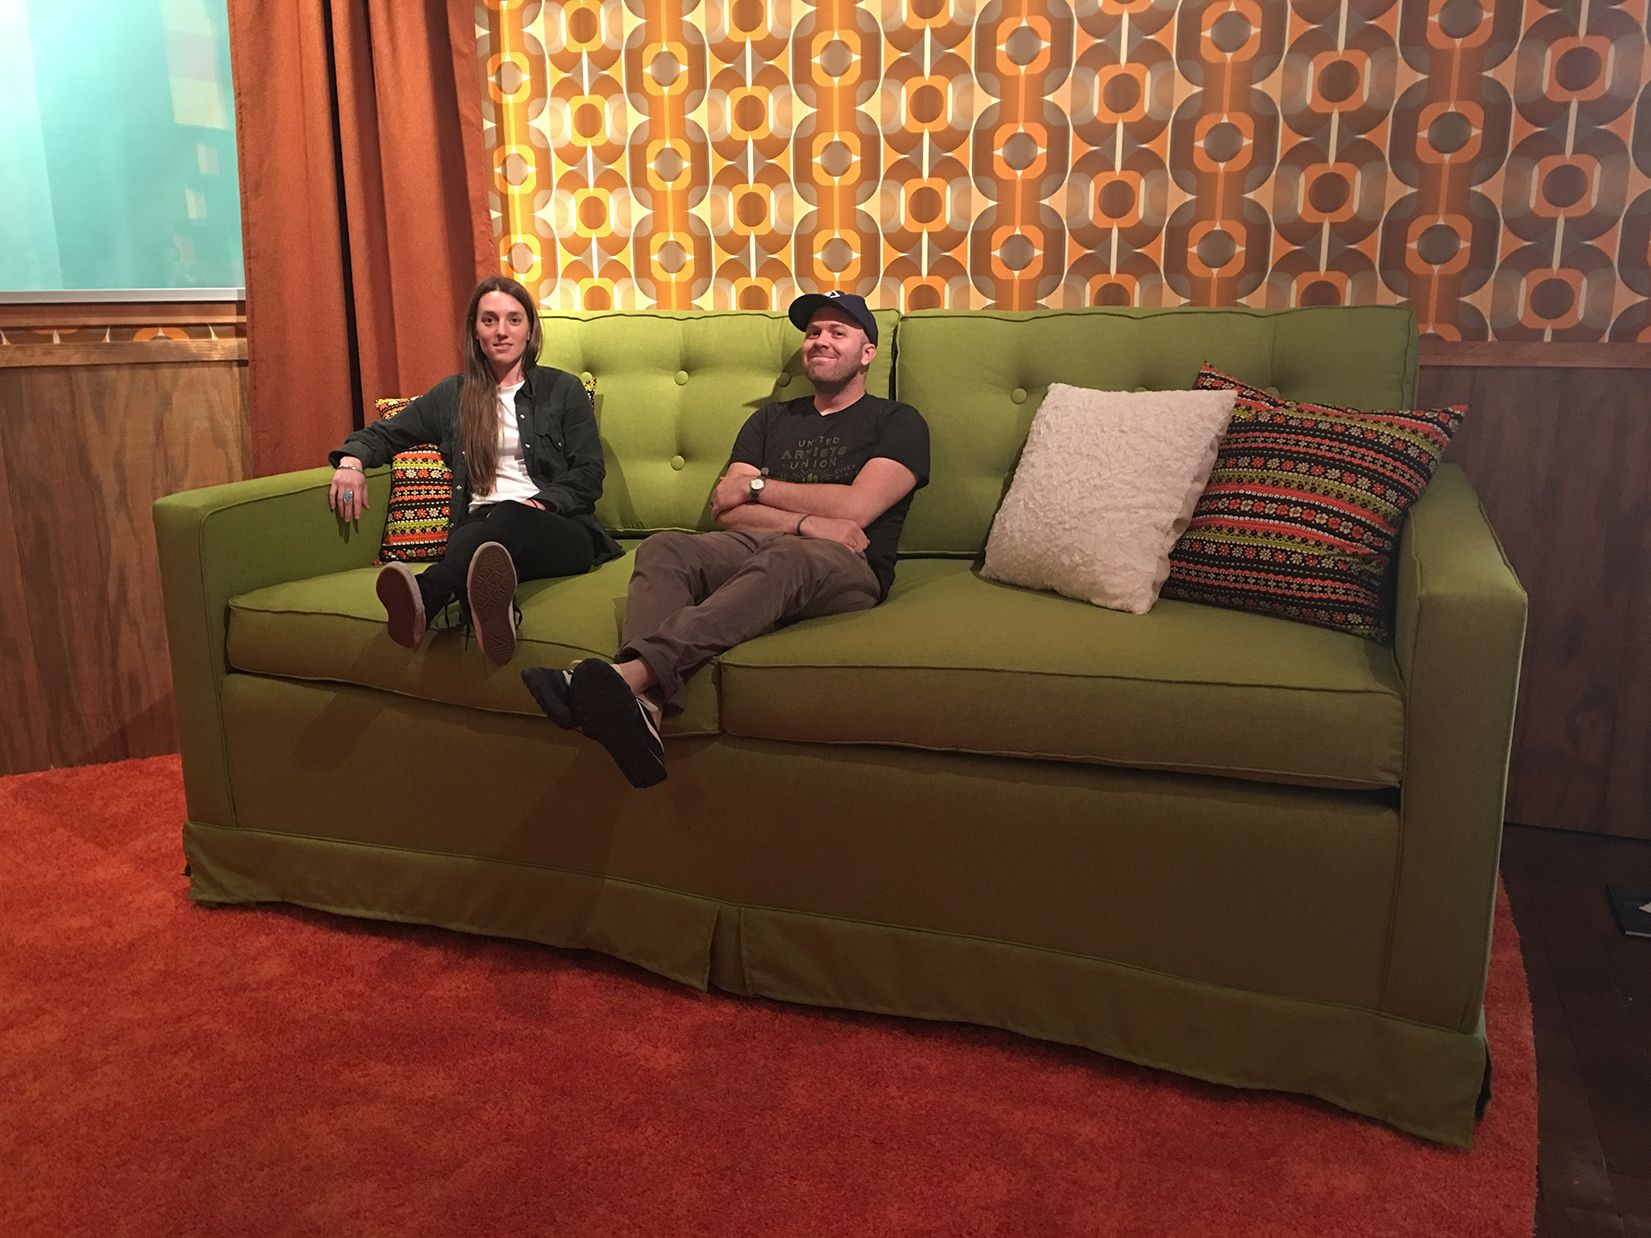 Essie and Michael on Oversized Couch